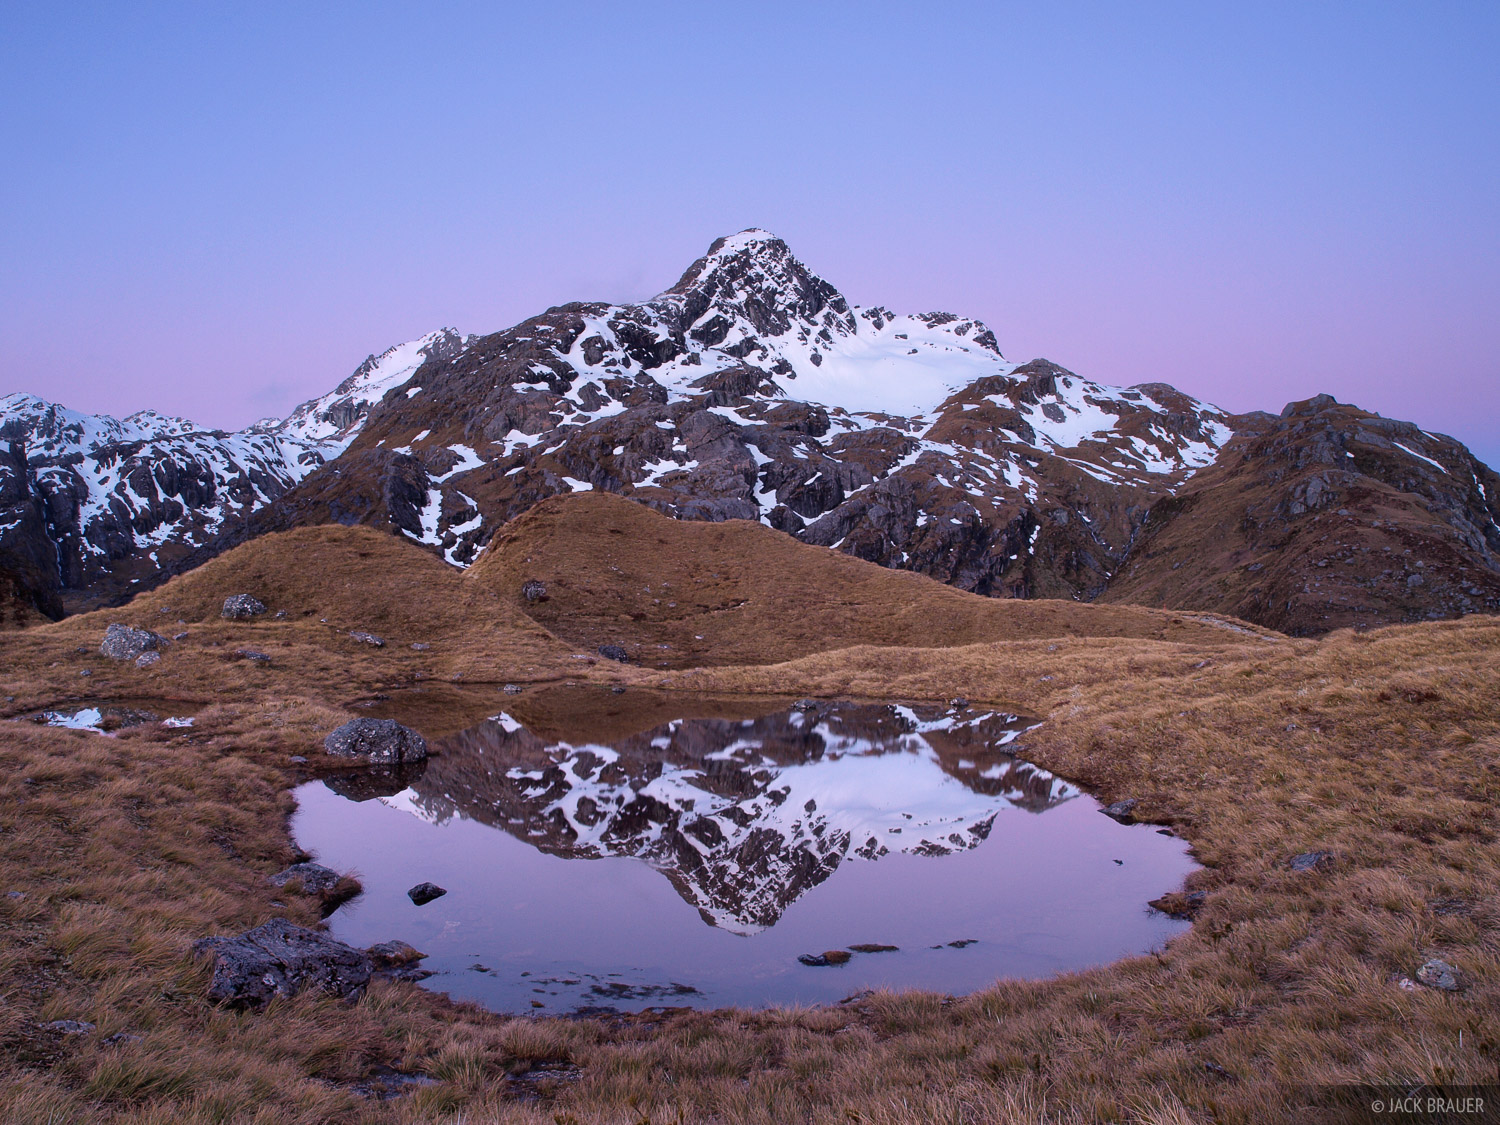 Xenicus, Harris Saddle, Routeburn, New Zealand, photo